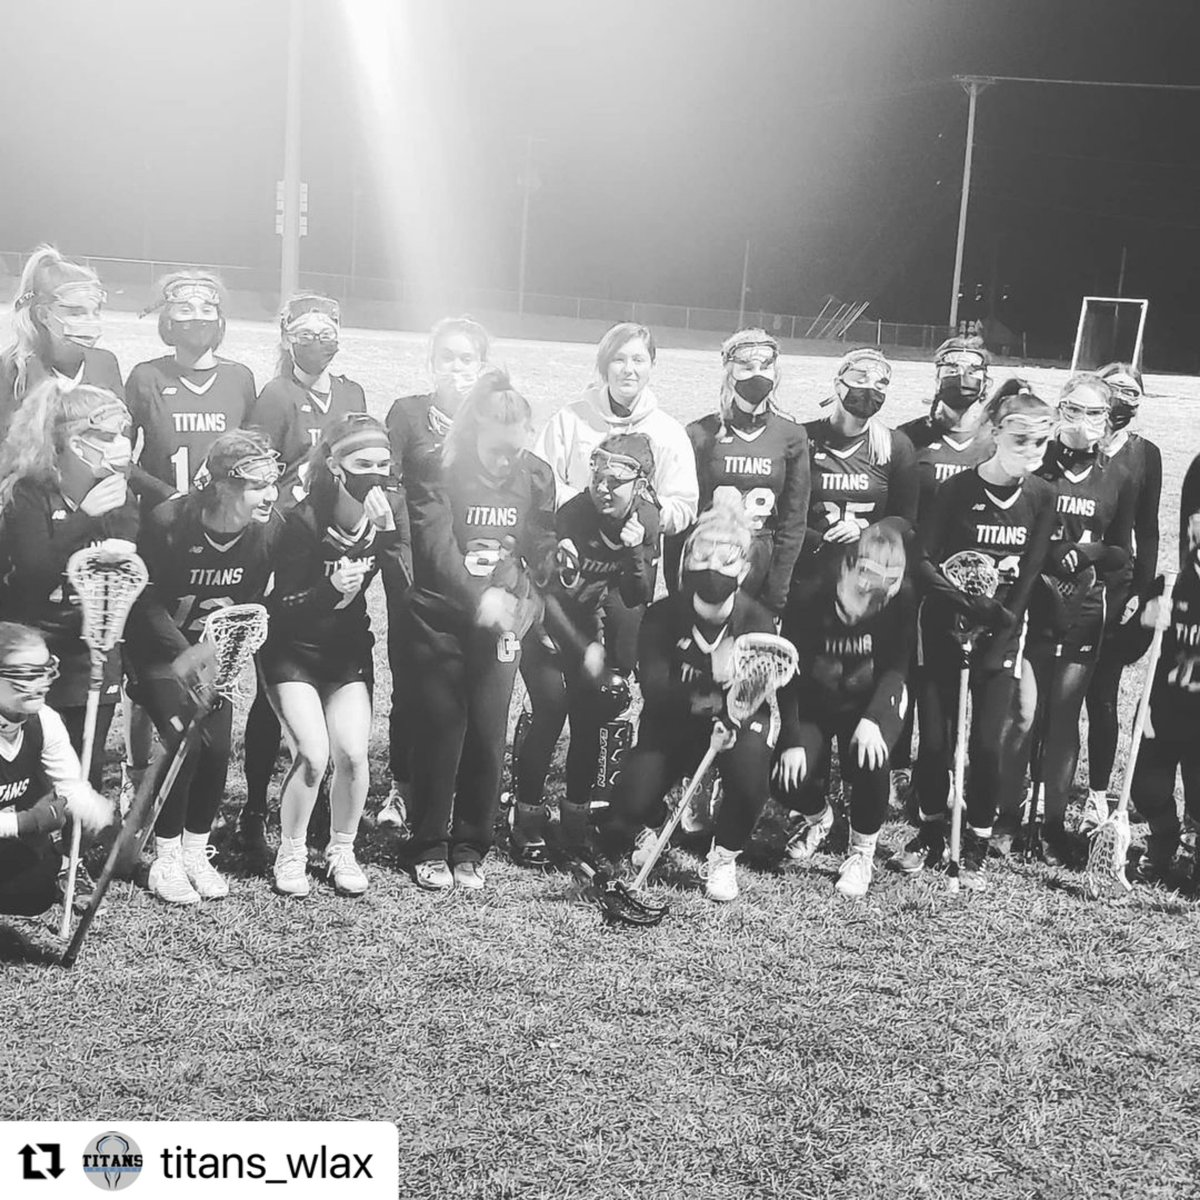 #Repost @Titans_wlax  ・・・ Great night of lacrosse for the Lady Titans!  Got the win against E-town (15-8). Came up a little short in the 2nd game against Central Hardin (5-10), but the team played well. #GLAX #GoTitans